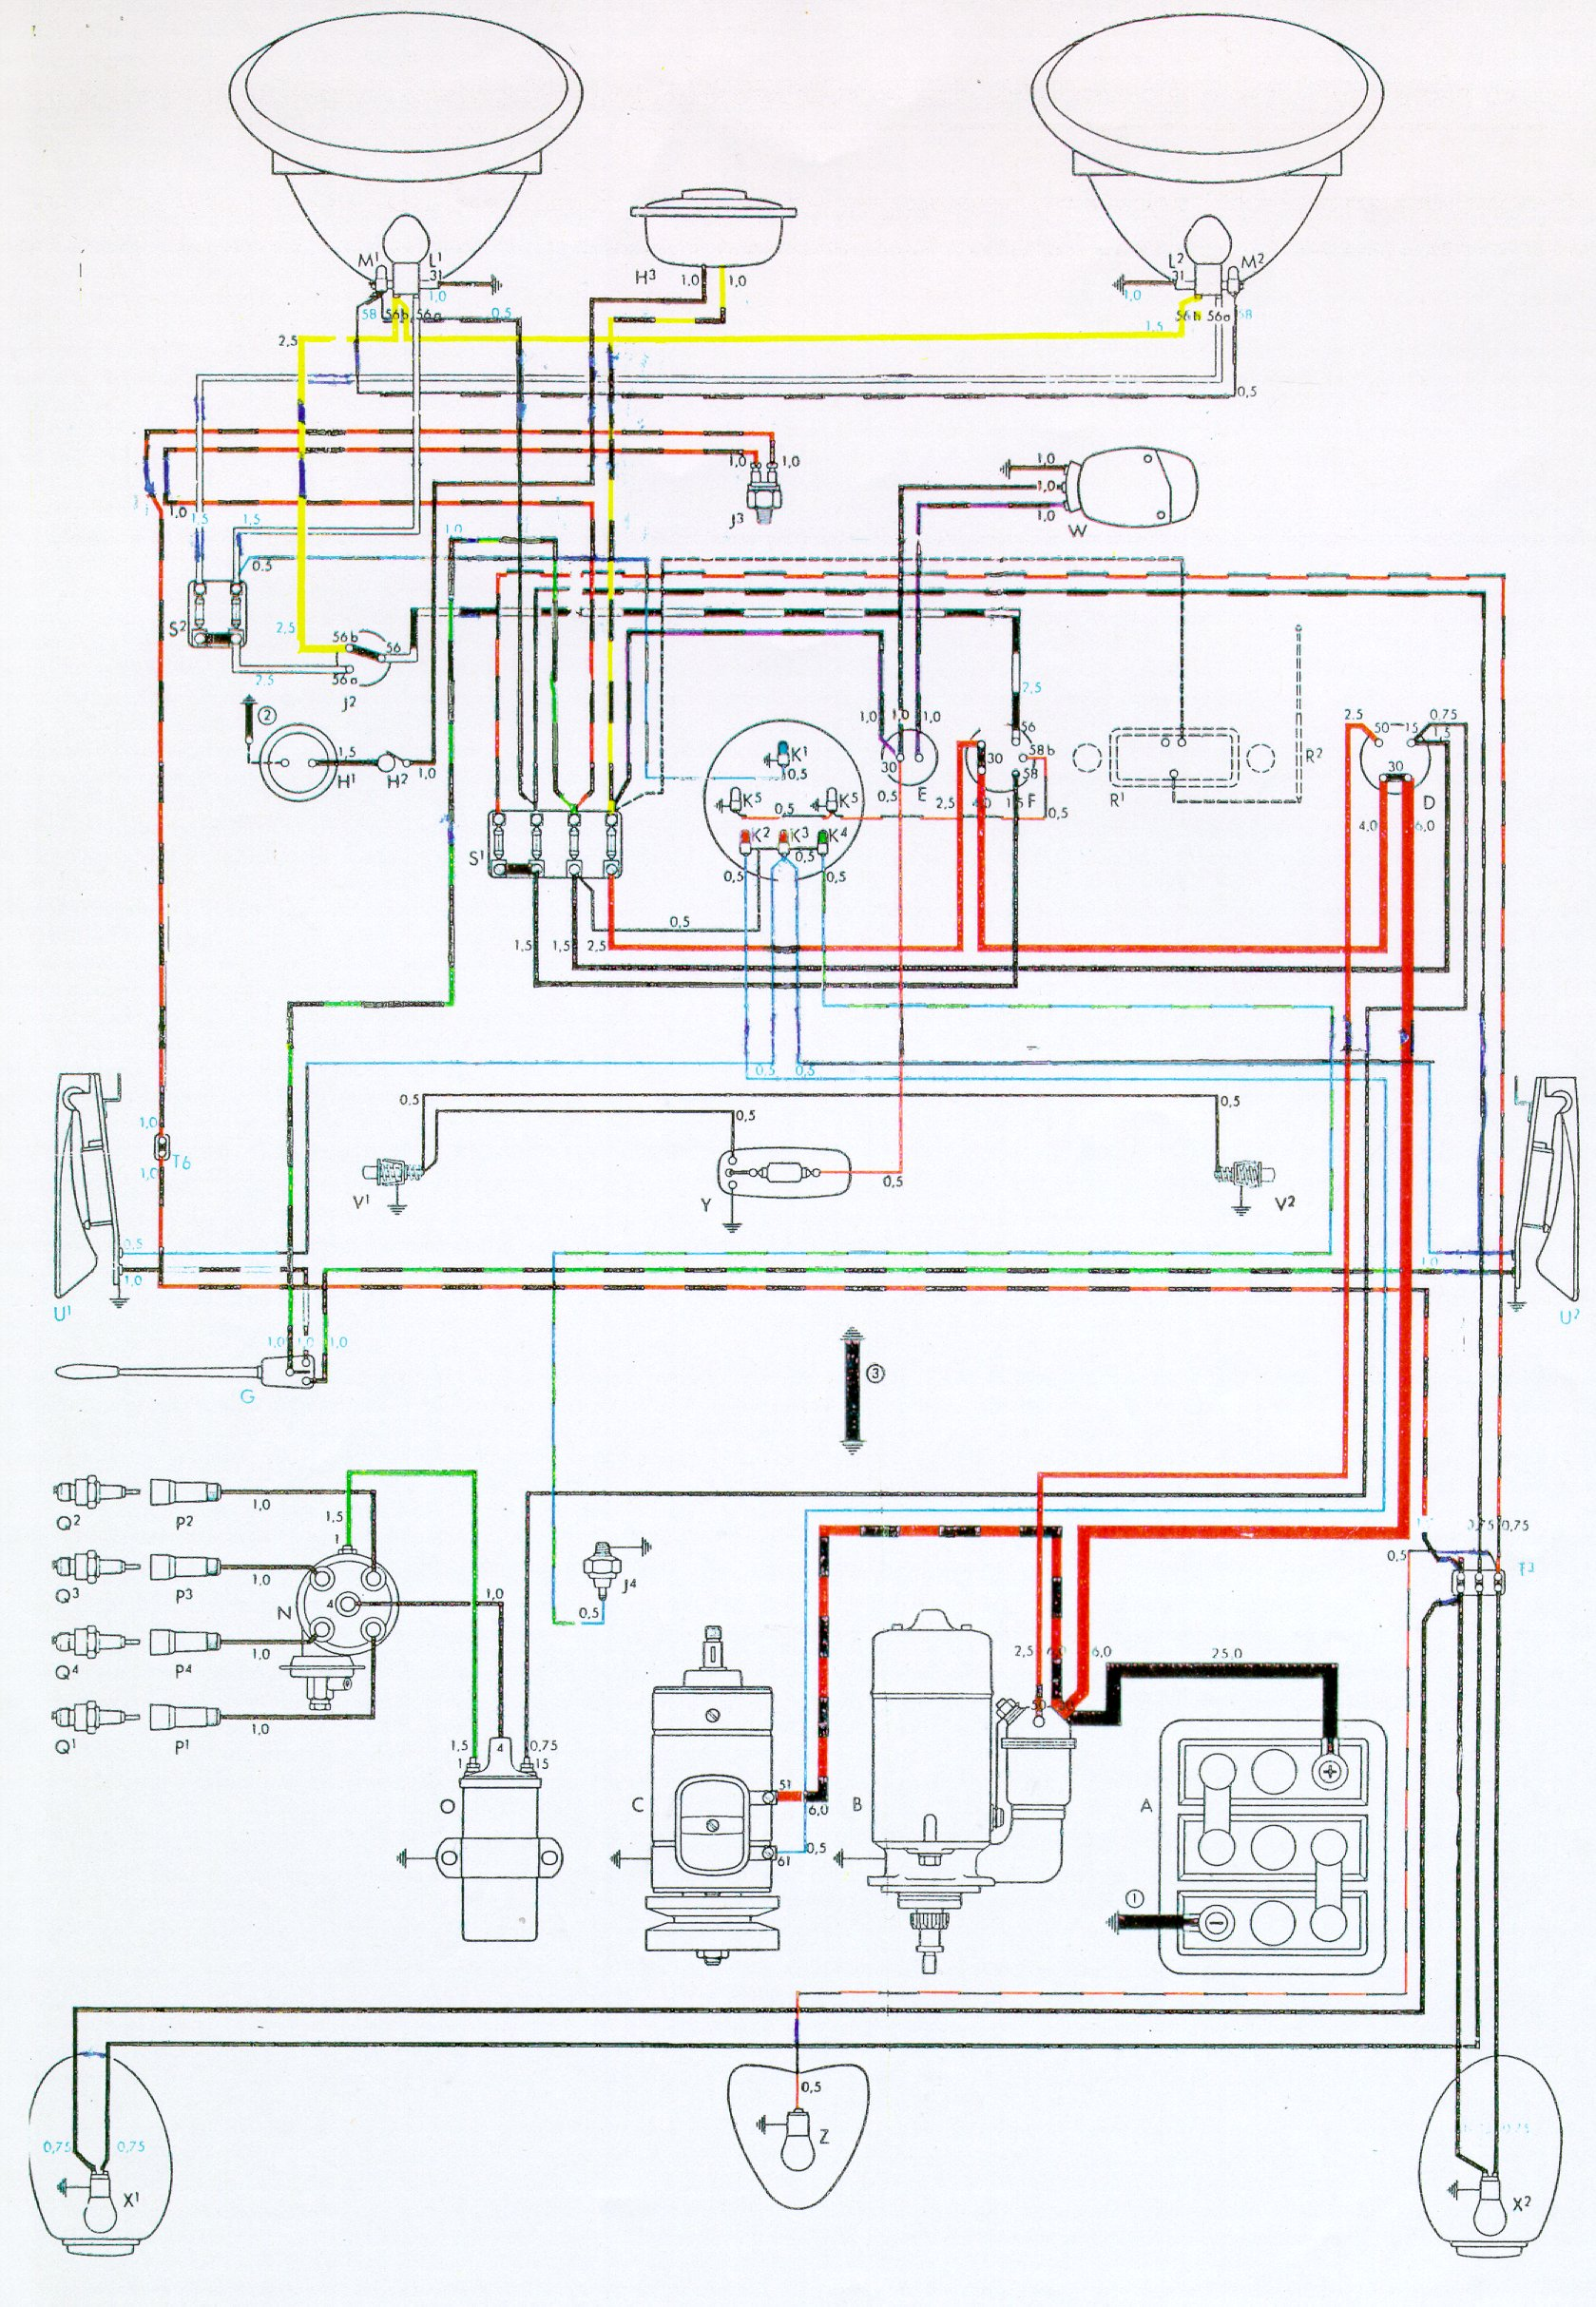 1967 vw beetle wiring diagram  | boxerville.se